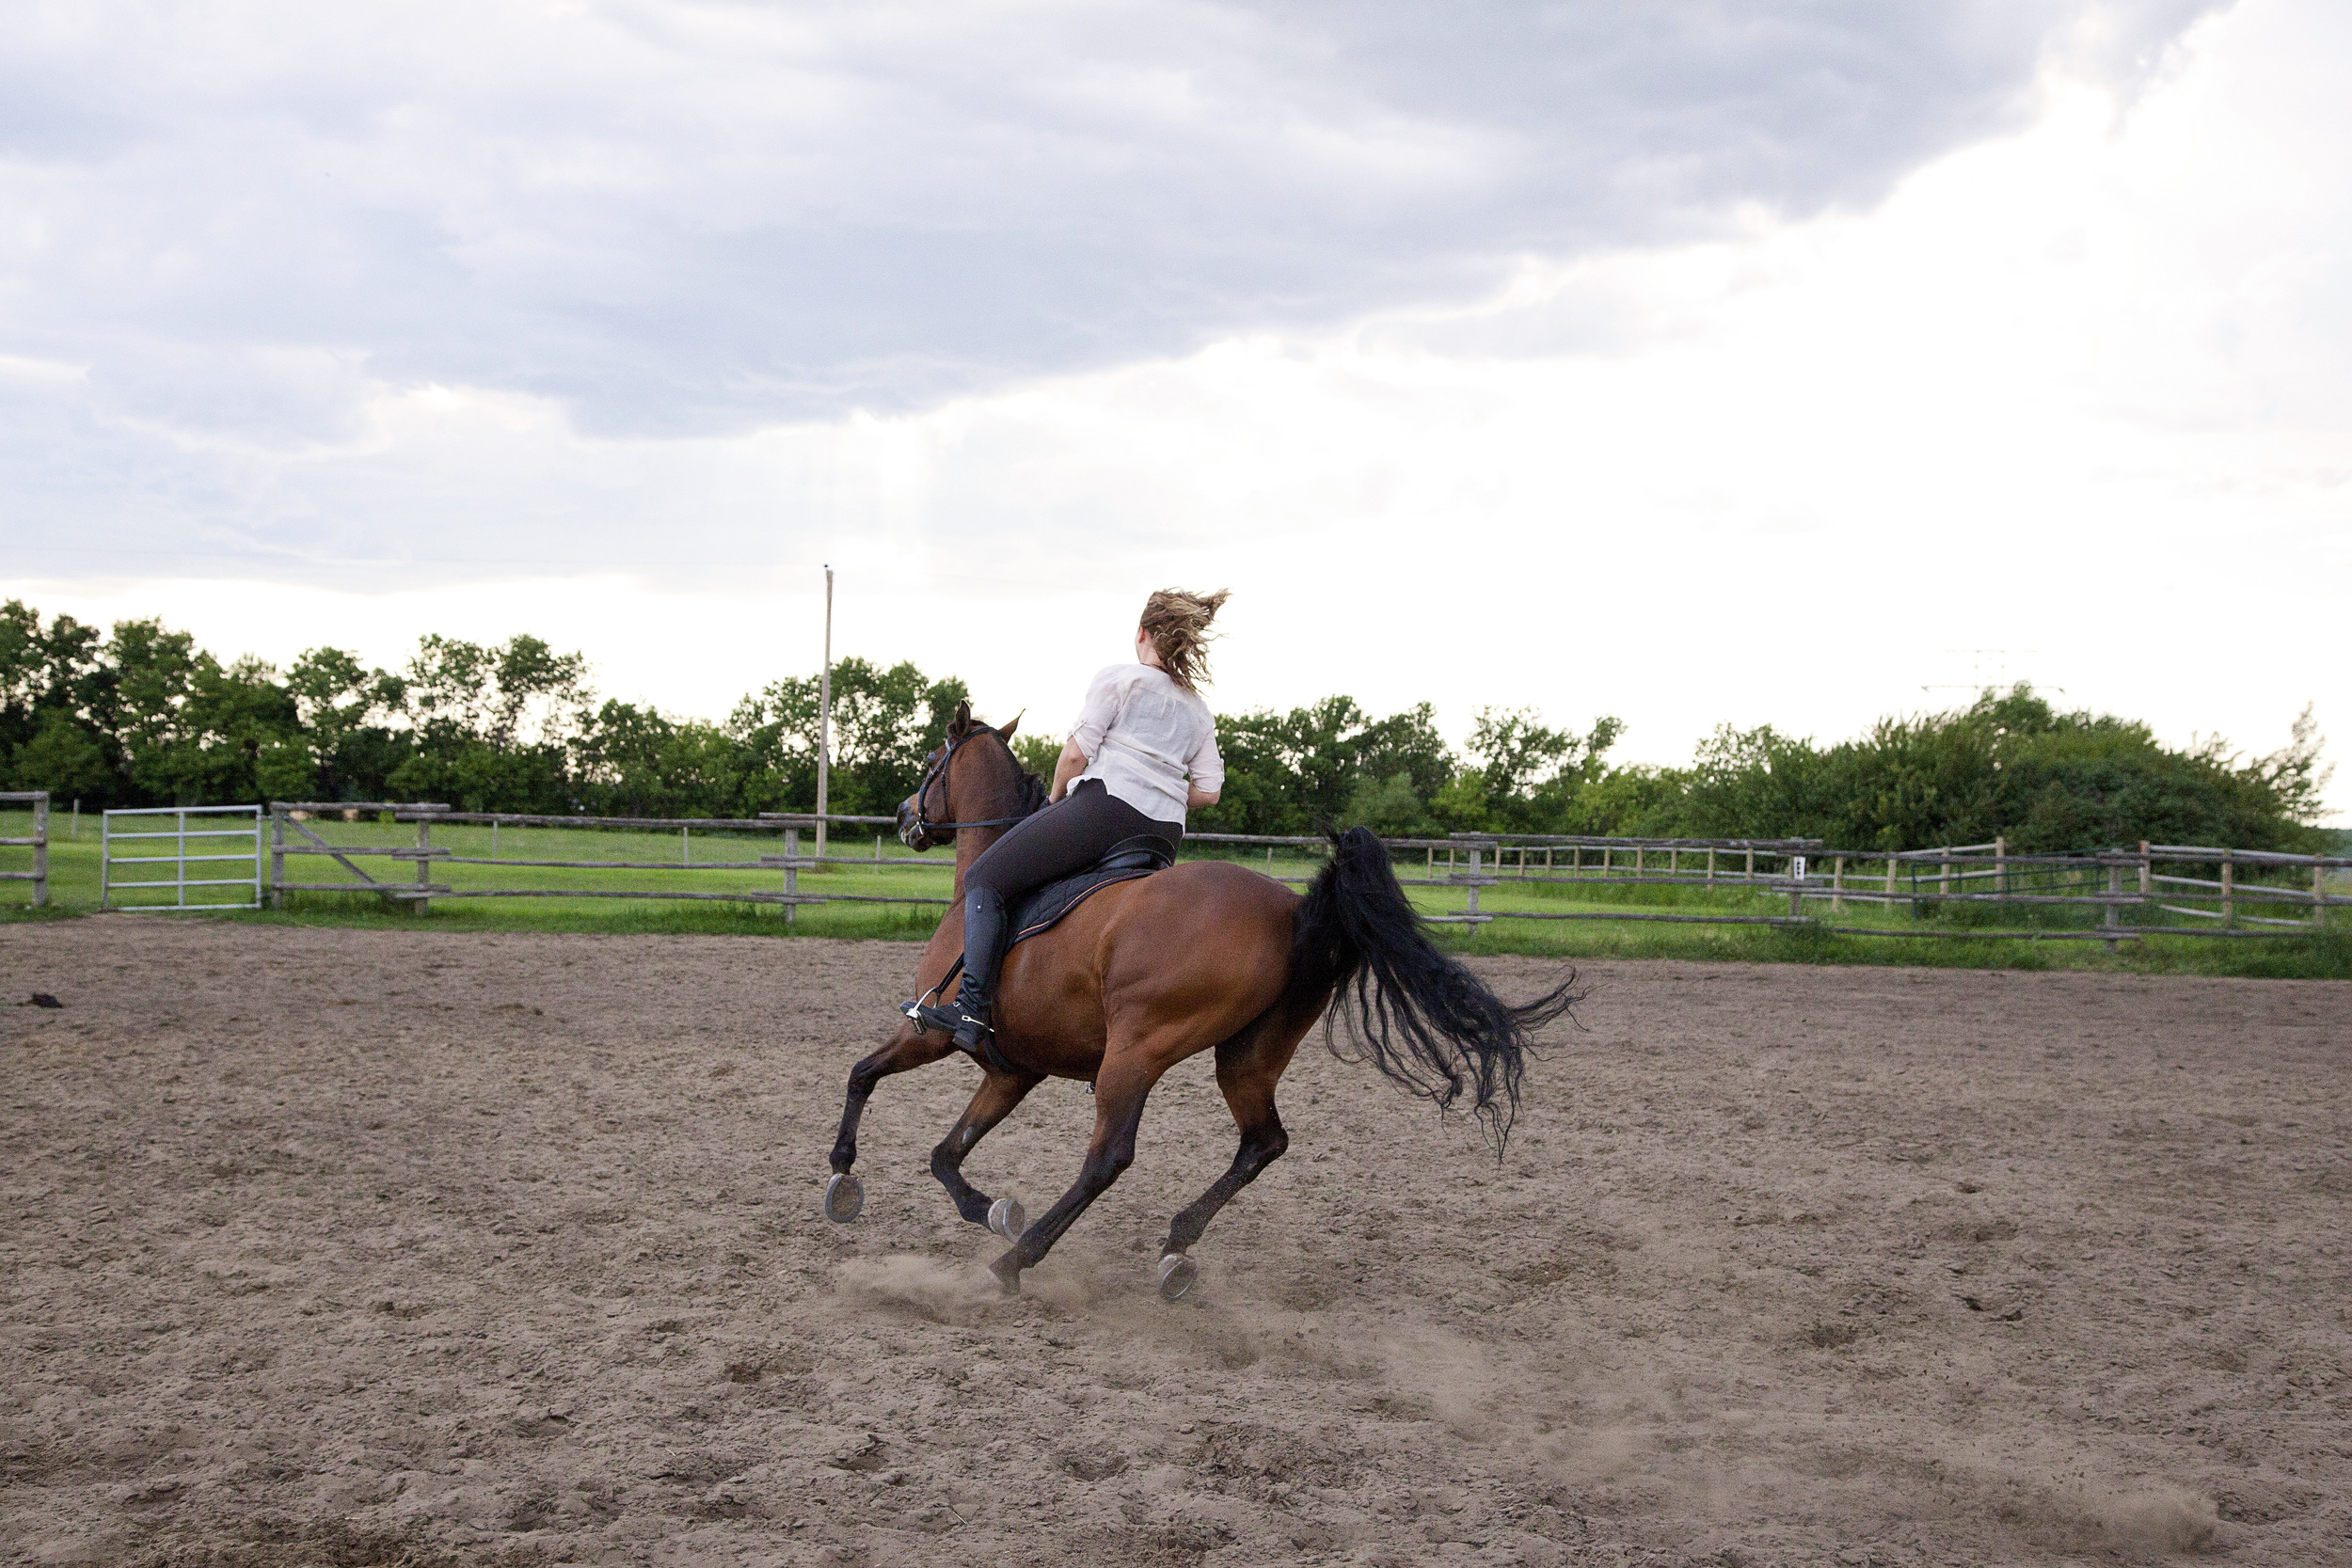 WIth the slightest (i.e. we couldn't see them) changes in physical communication, Jenn directed Charley through several different patterns and gaits. They practice dressage.